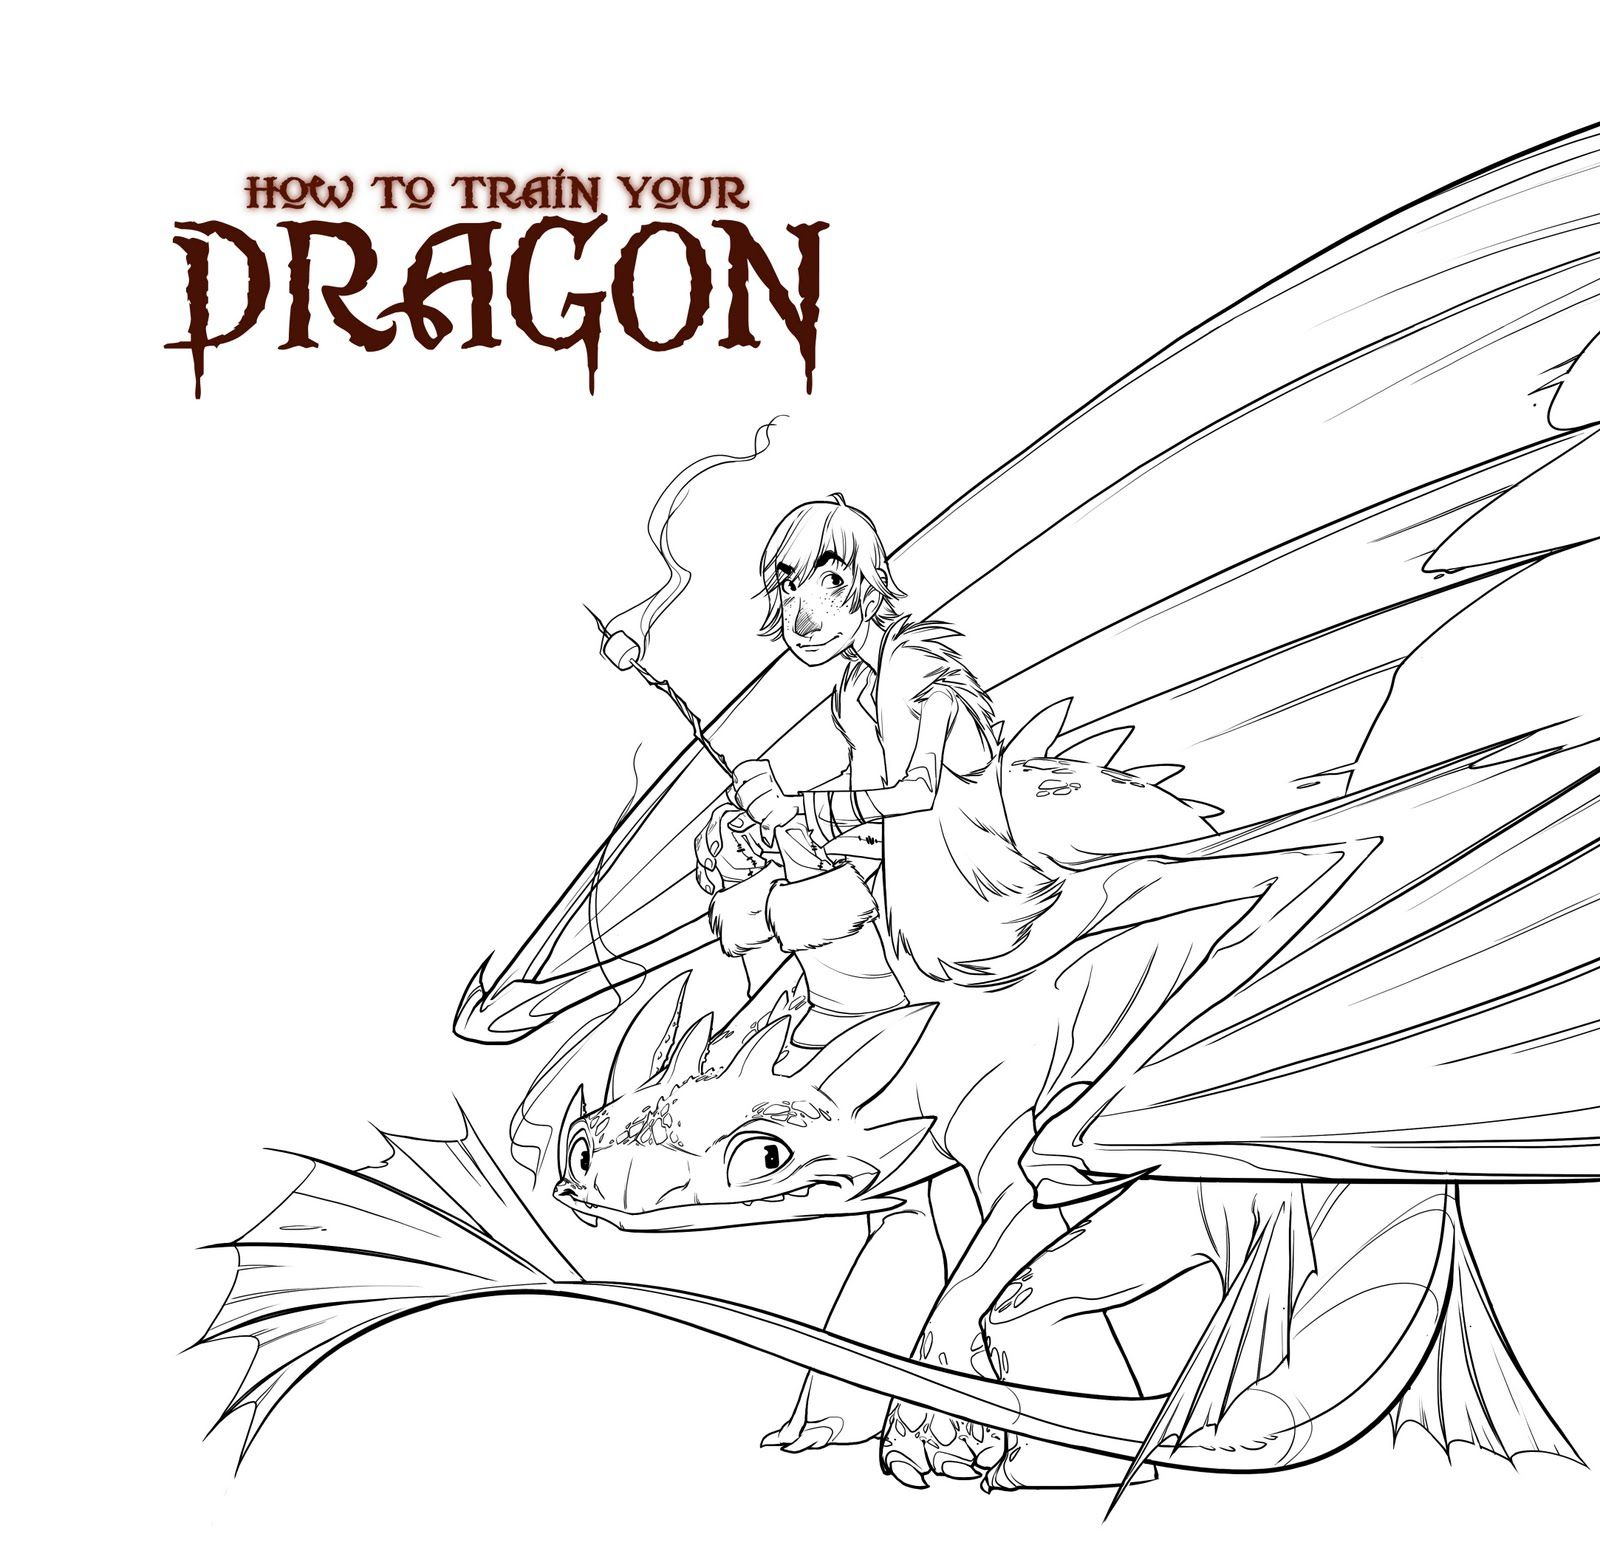 download how to train your dragon printable coloring pages for kids girls and boys - Dragon Printable Coloring Pages 2